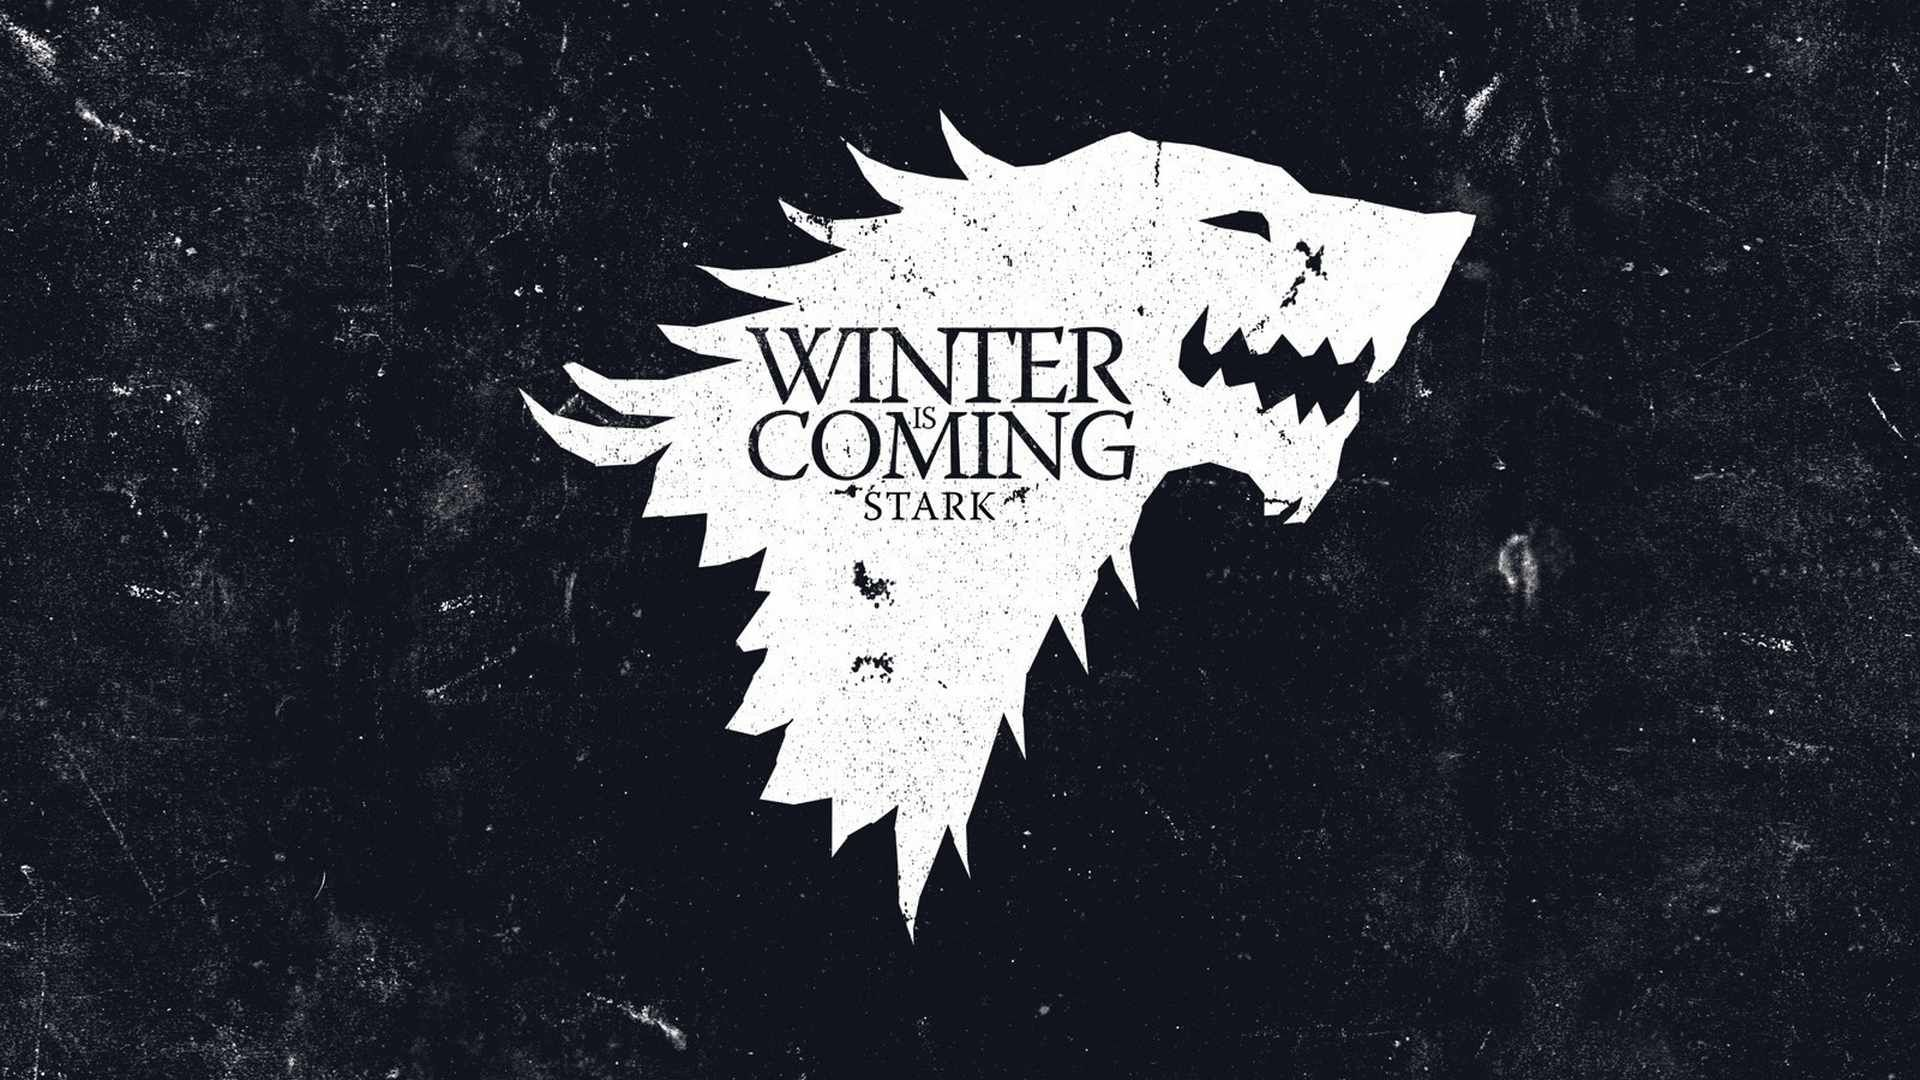 Images From Game Of Thrones Google Search Winter Is Coming Wallpaper Game Of Thrones Houses Game Of Thrones Winter